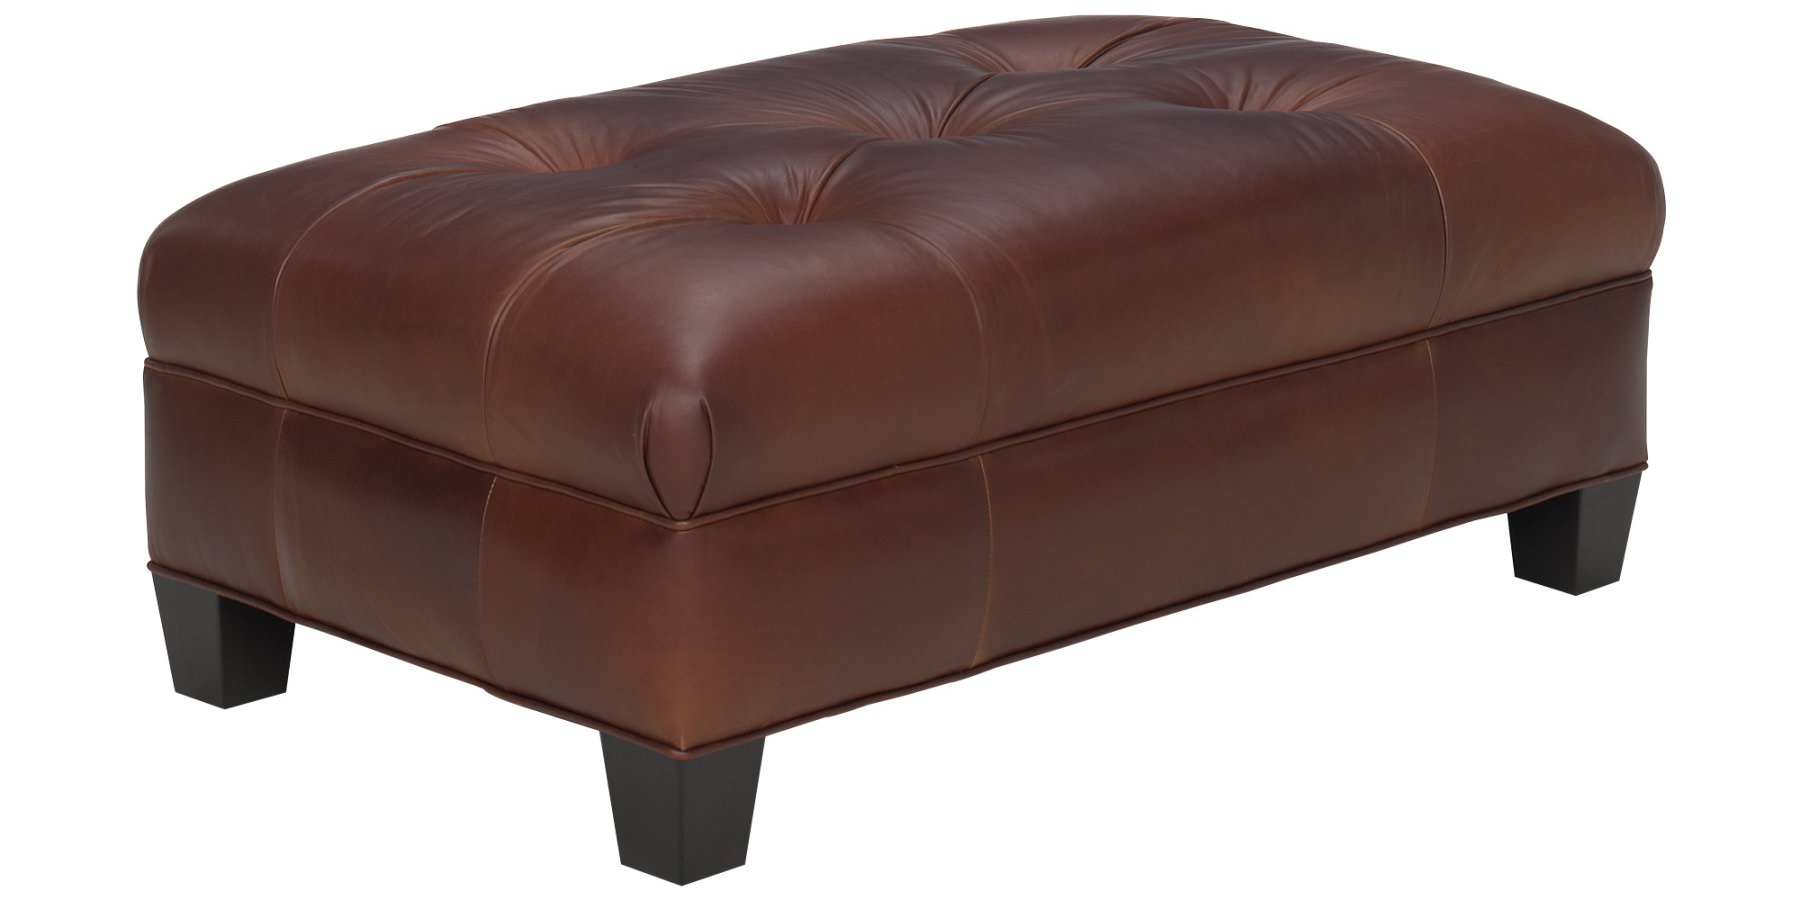 Small tufted ottoman leather coffee table club furniture Leather tufted ottoman coffee table